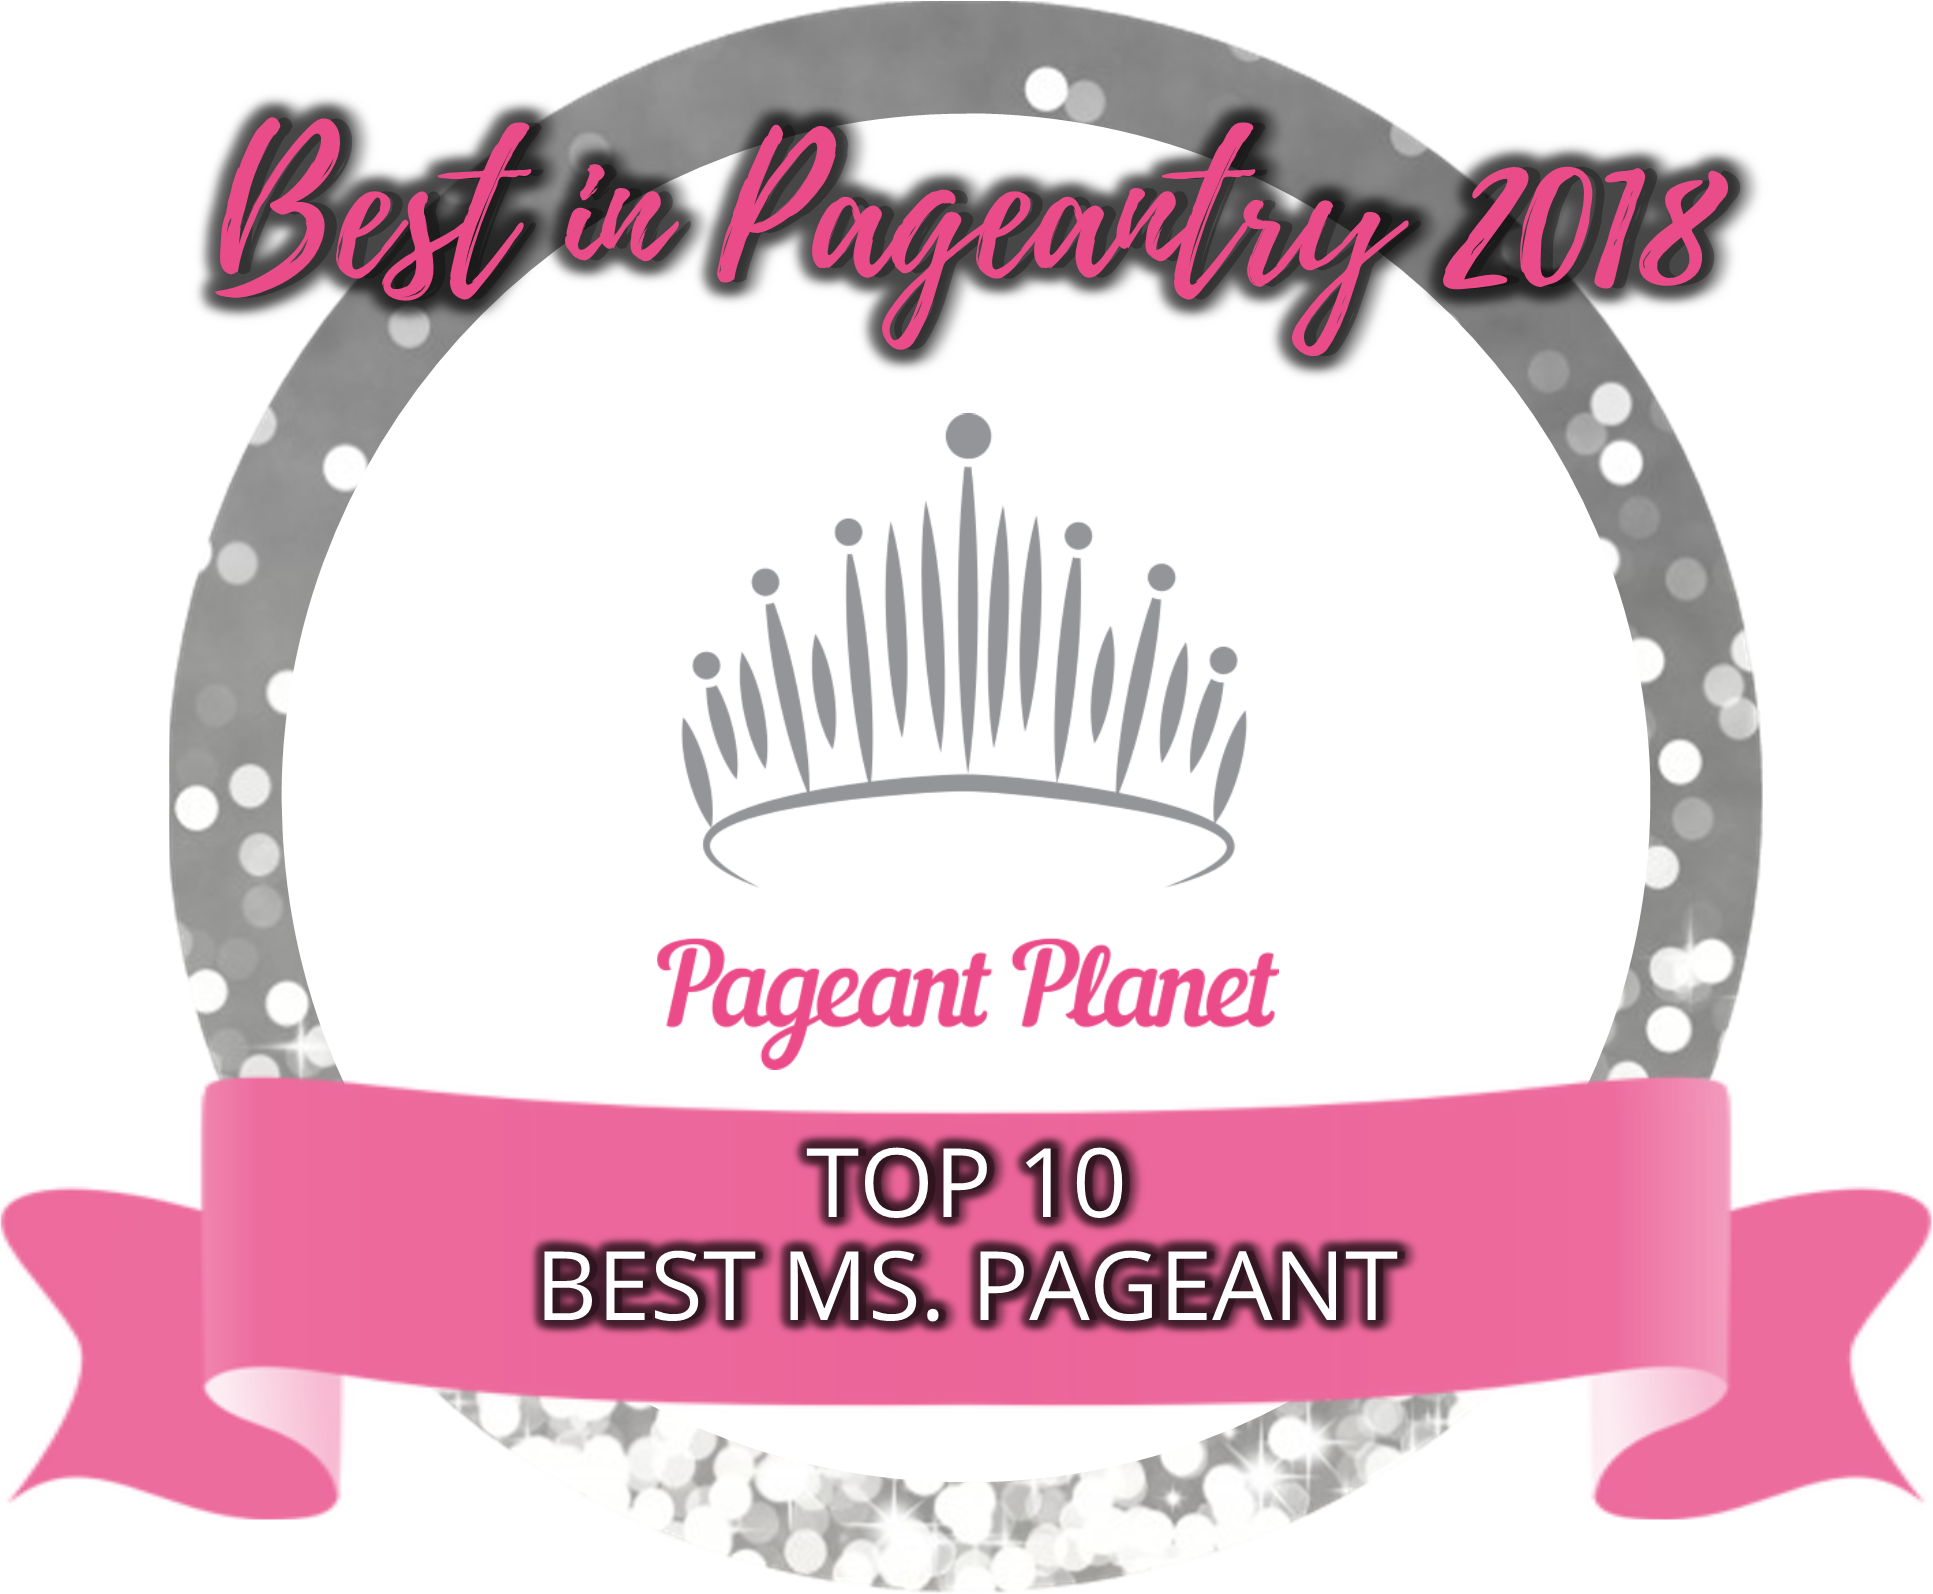 Top 10 Best Ms. Pageant of 2018